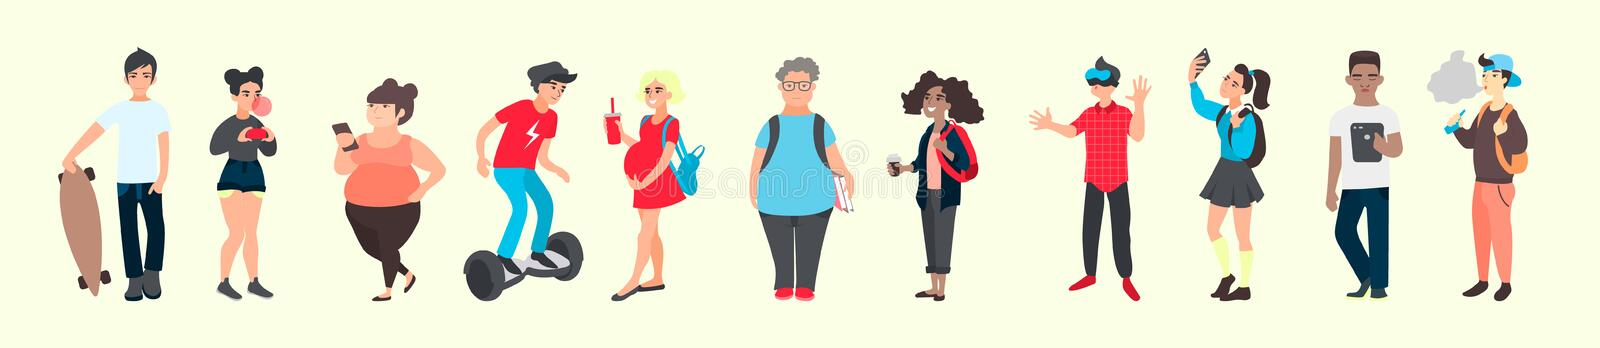 Croud of young people. Teen activities and teenager problems concept. Group of international diverse teenage persons stock illustration